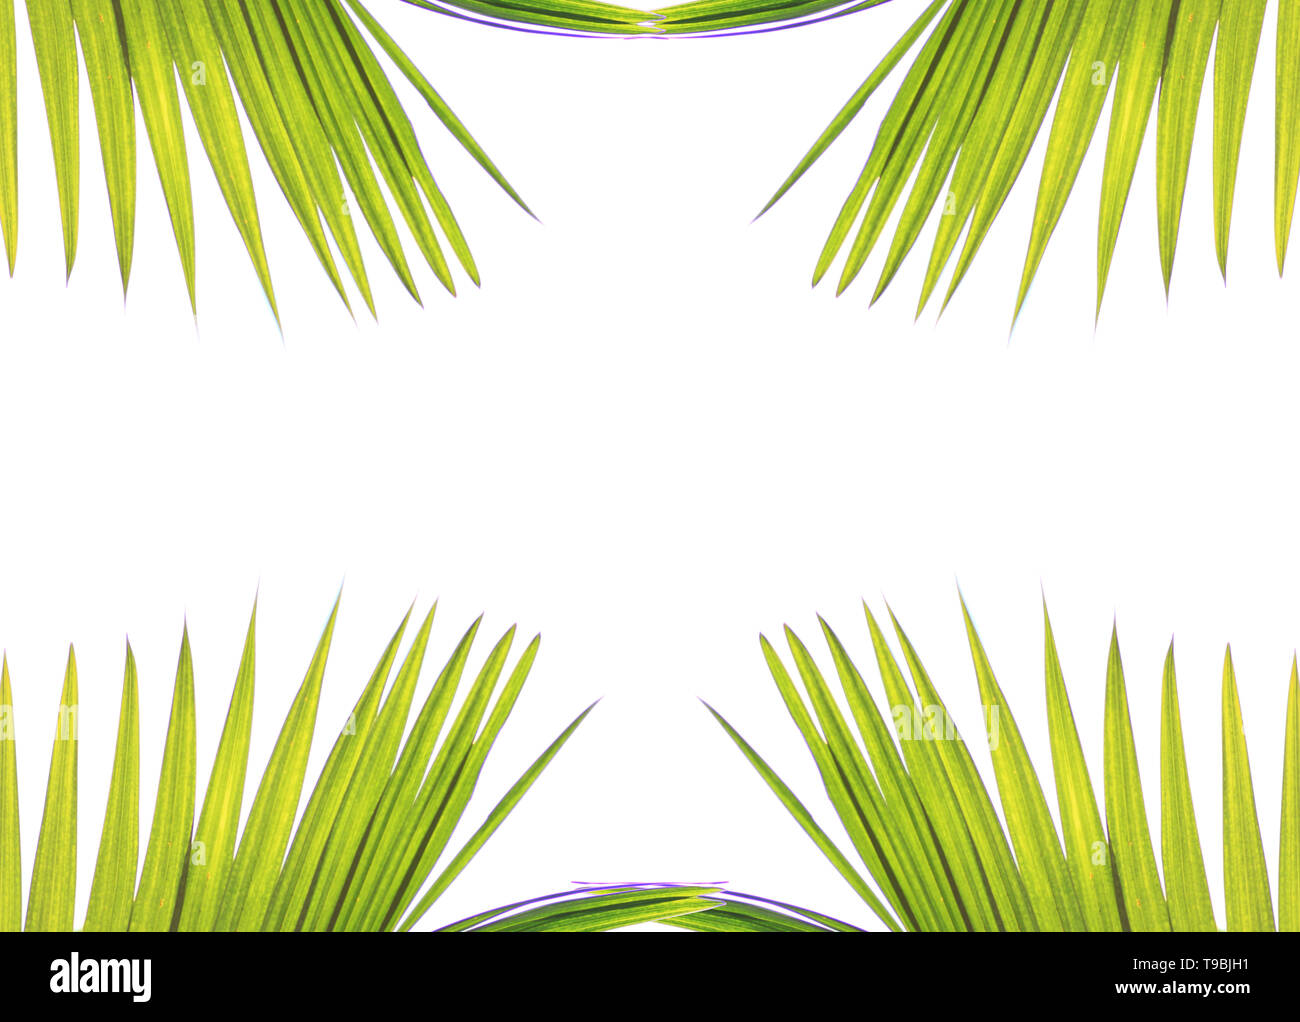 Green leaves of palm trees isolated on a white background and with spaces Stock Photo